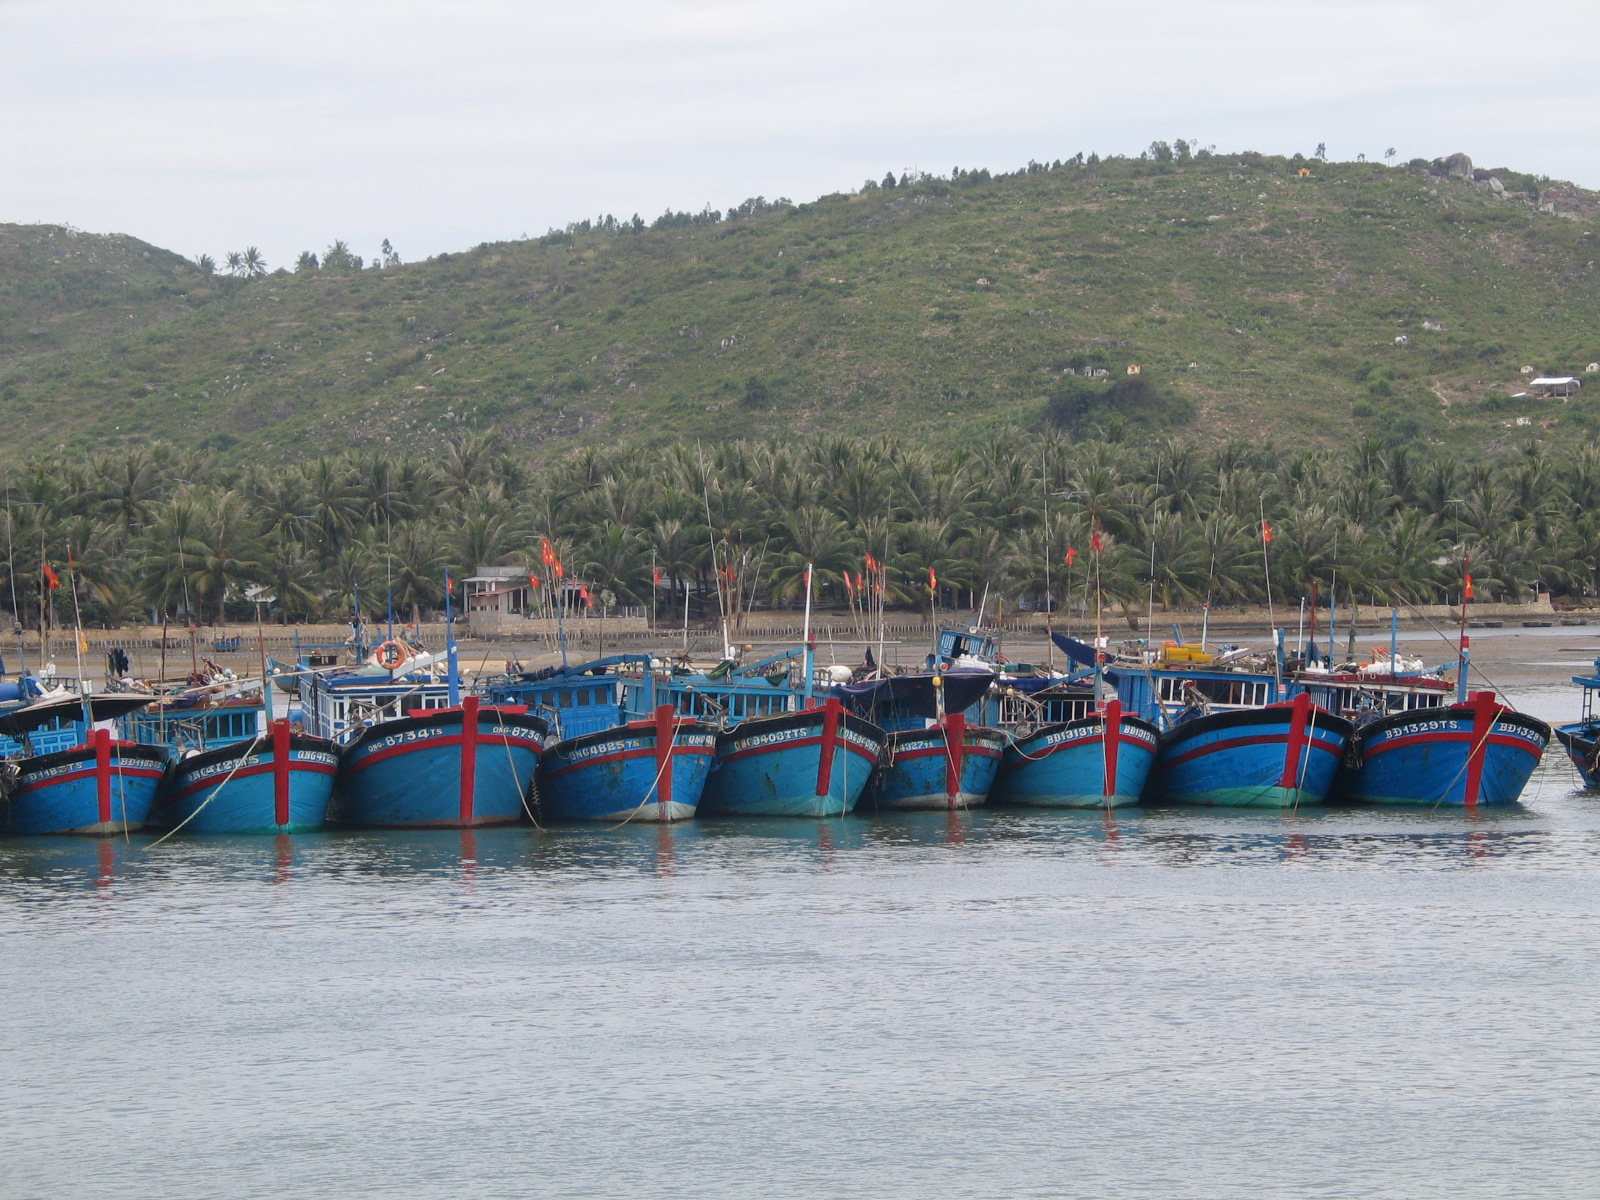 Fishery development potential of Ben Tre province